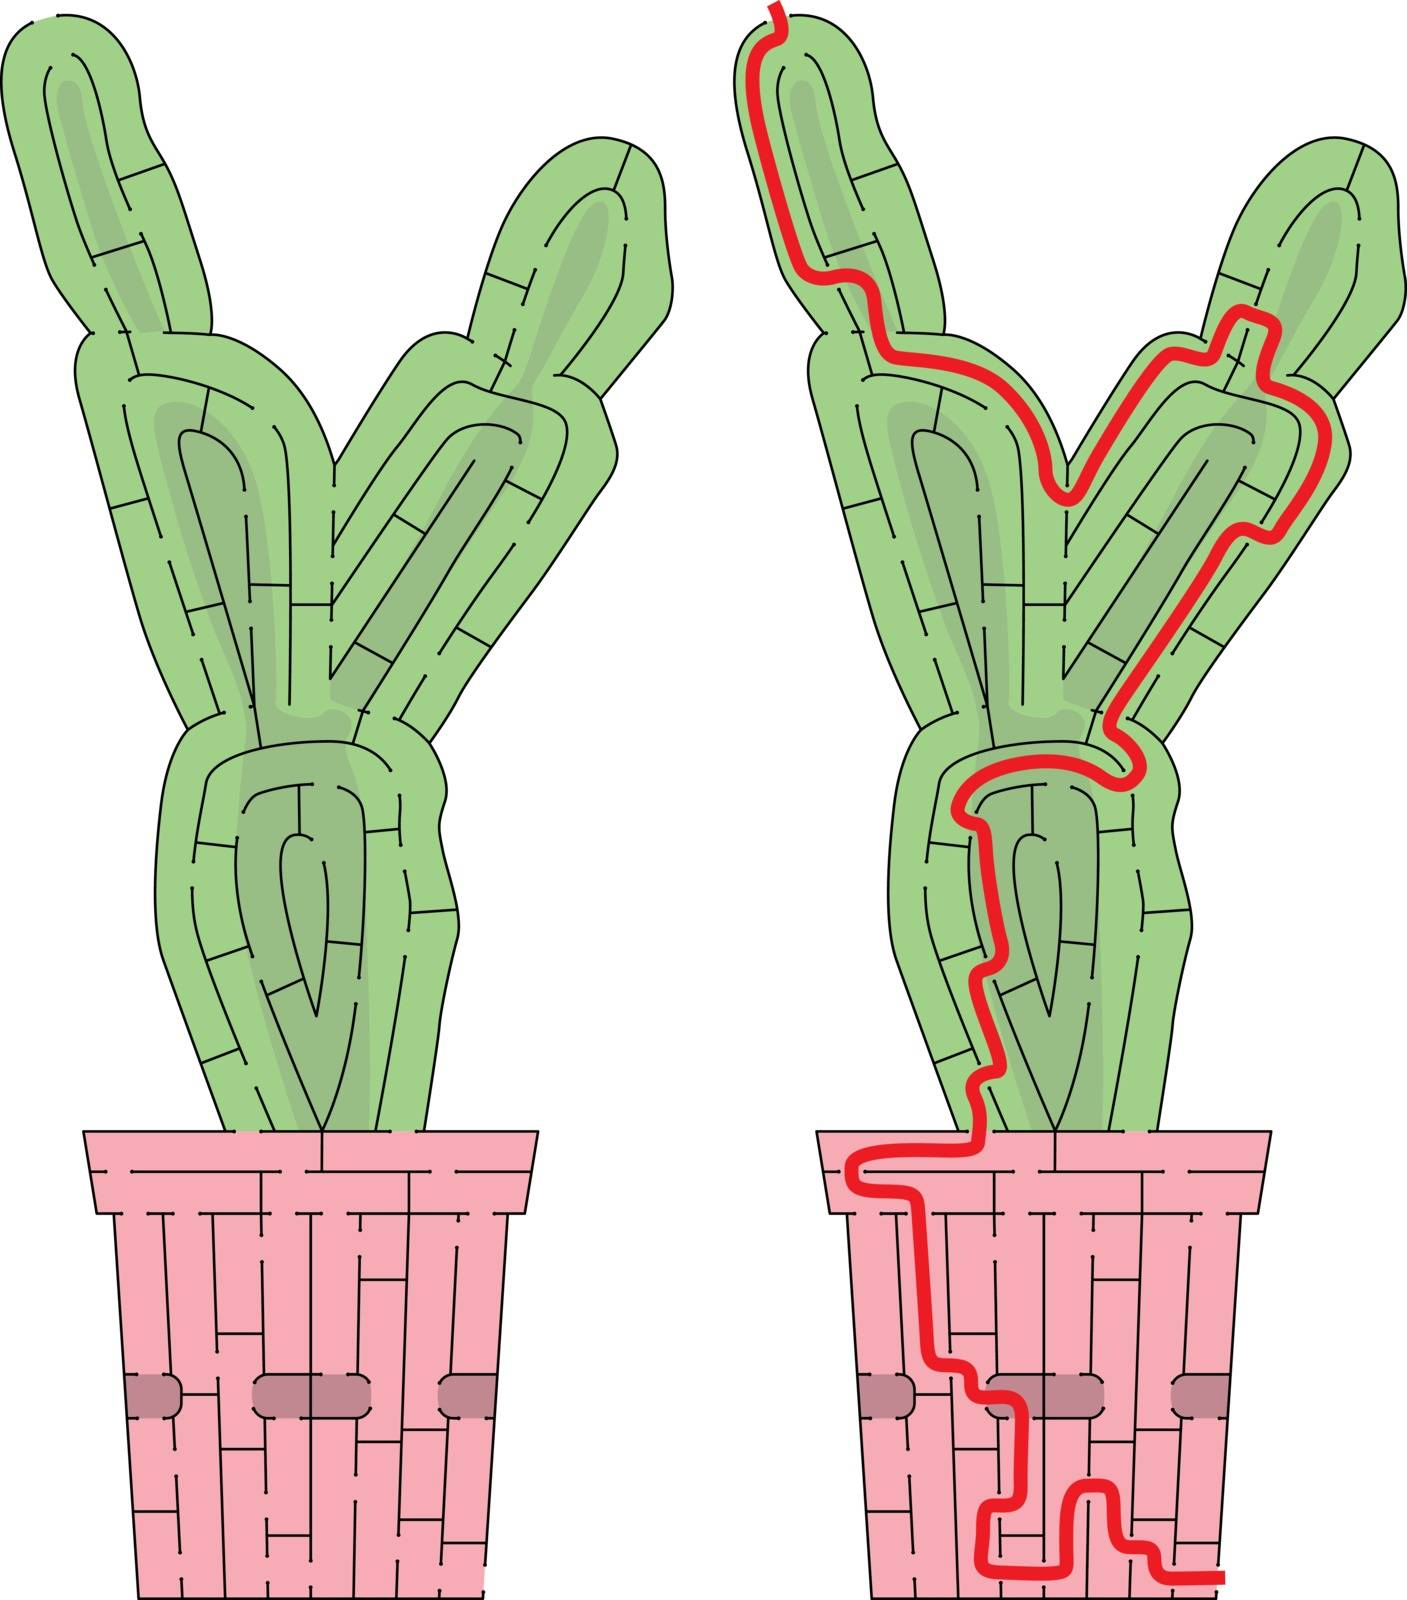 Cactus maze for kids with a solution